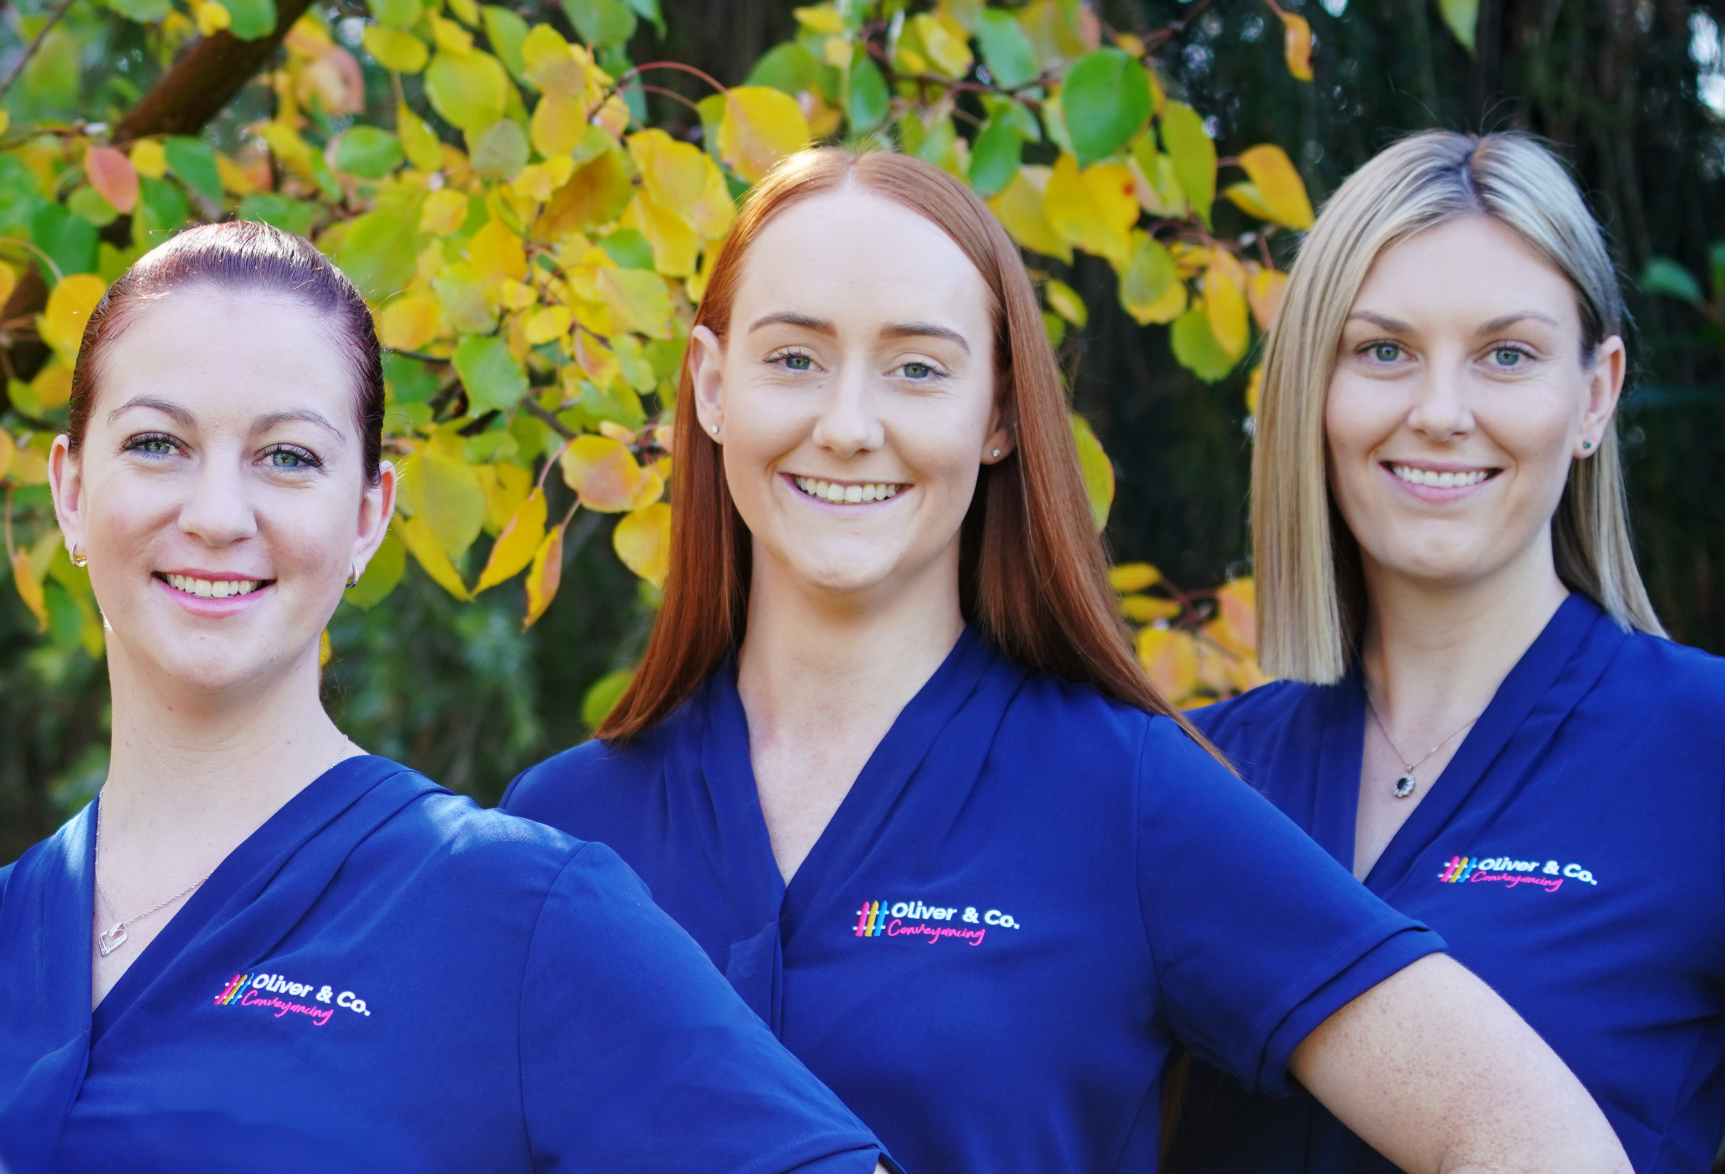 Conveyancing Services Hunter Valley - Oliver & Co. Conveyancing - Team Photo